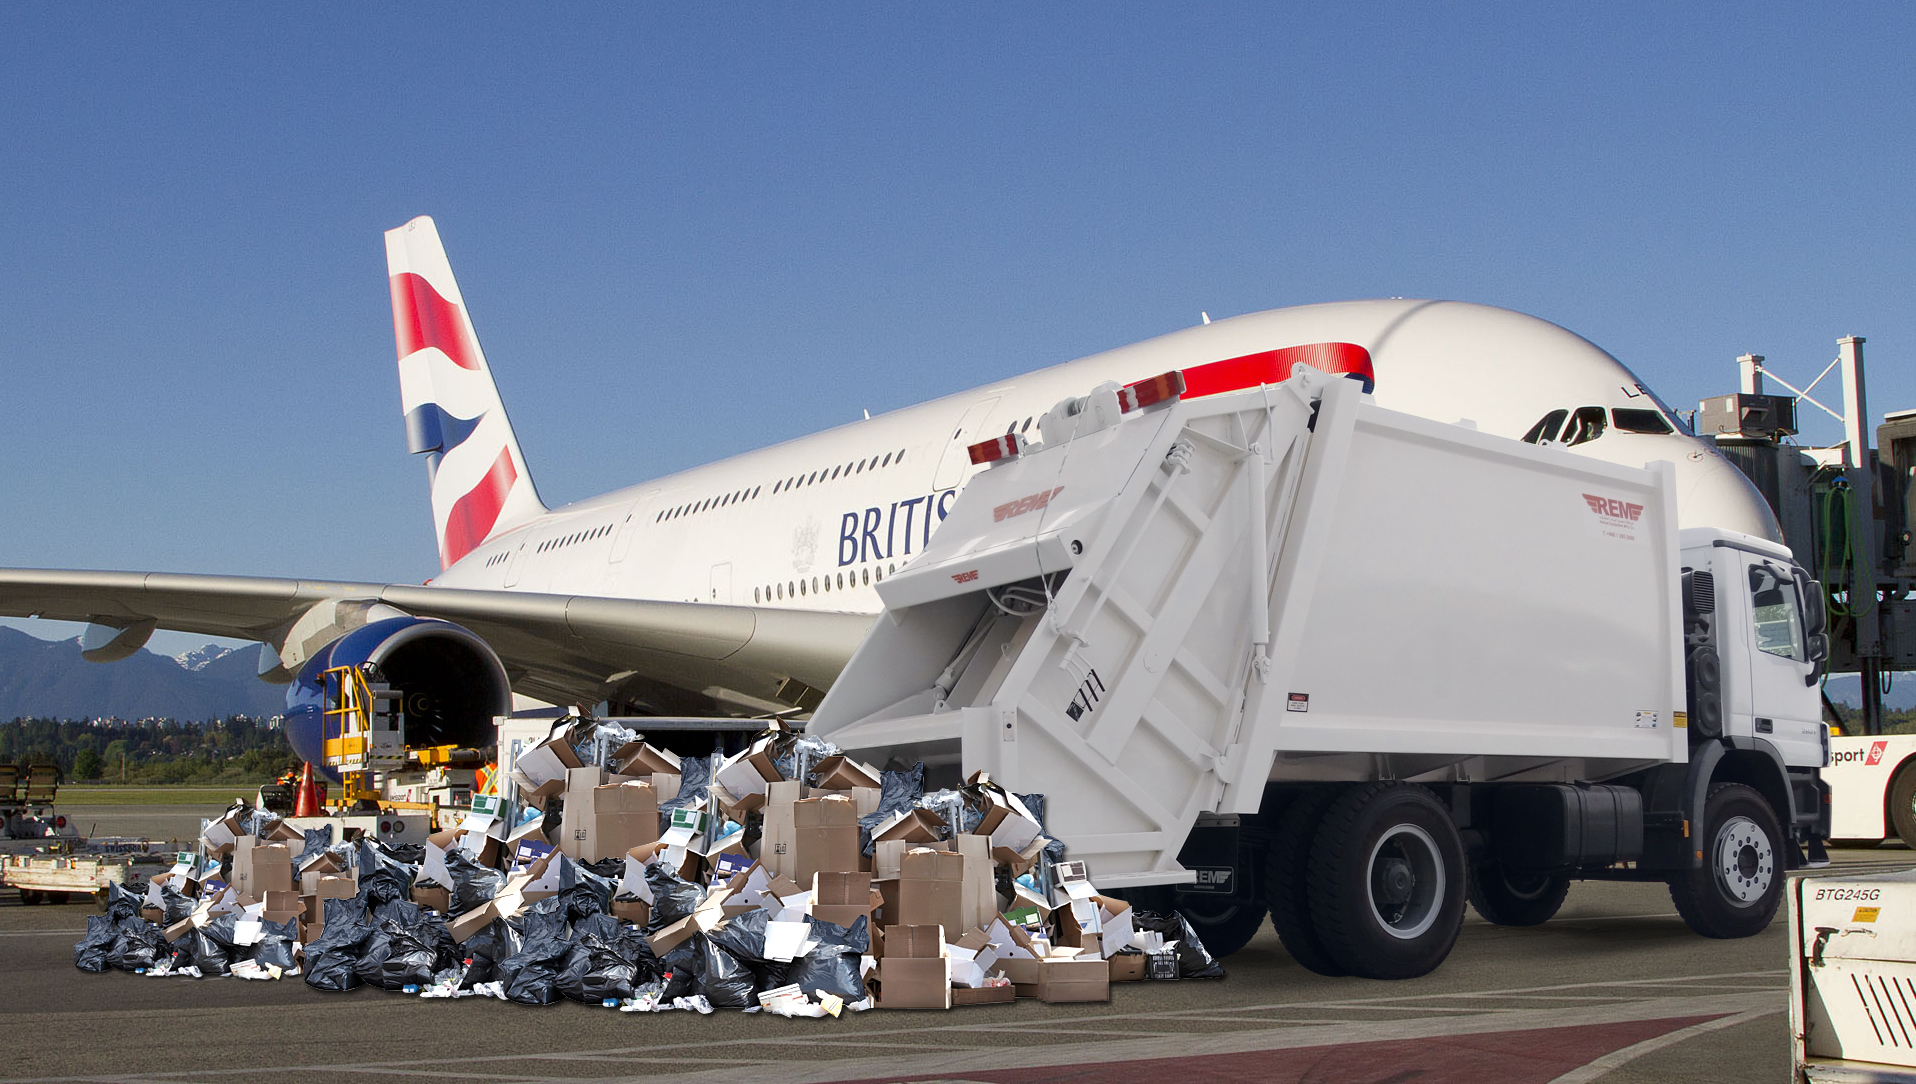 Does British Airways have the solution to our fuel crisis?